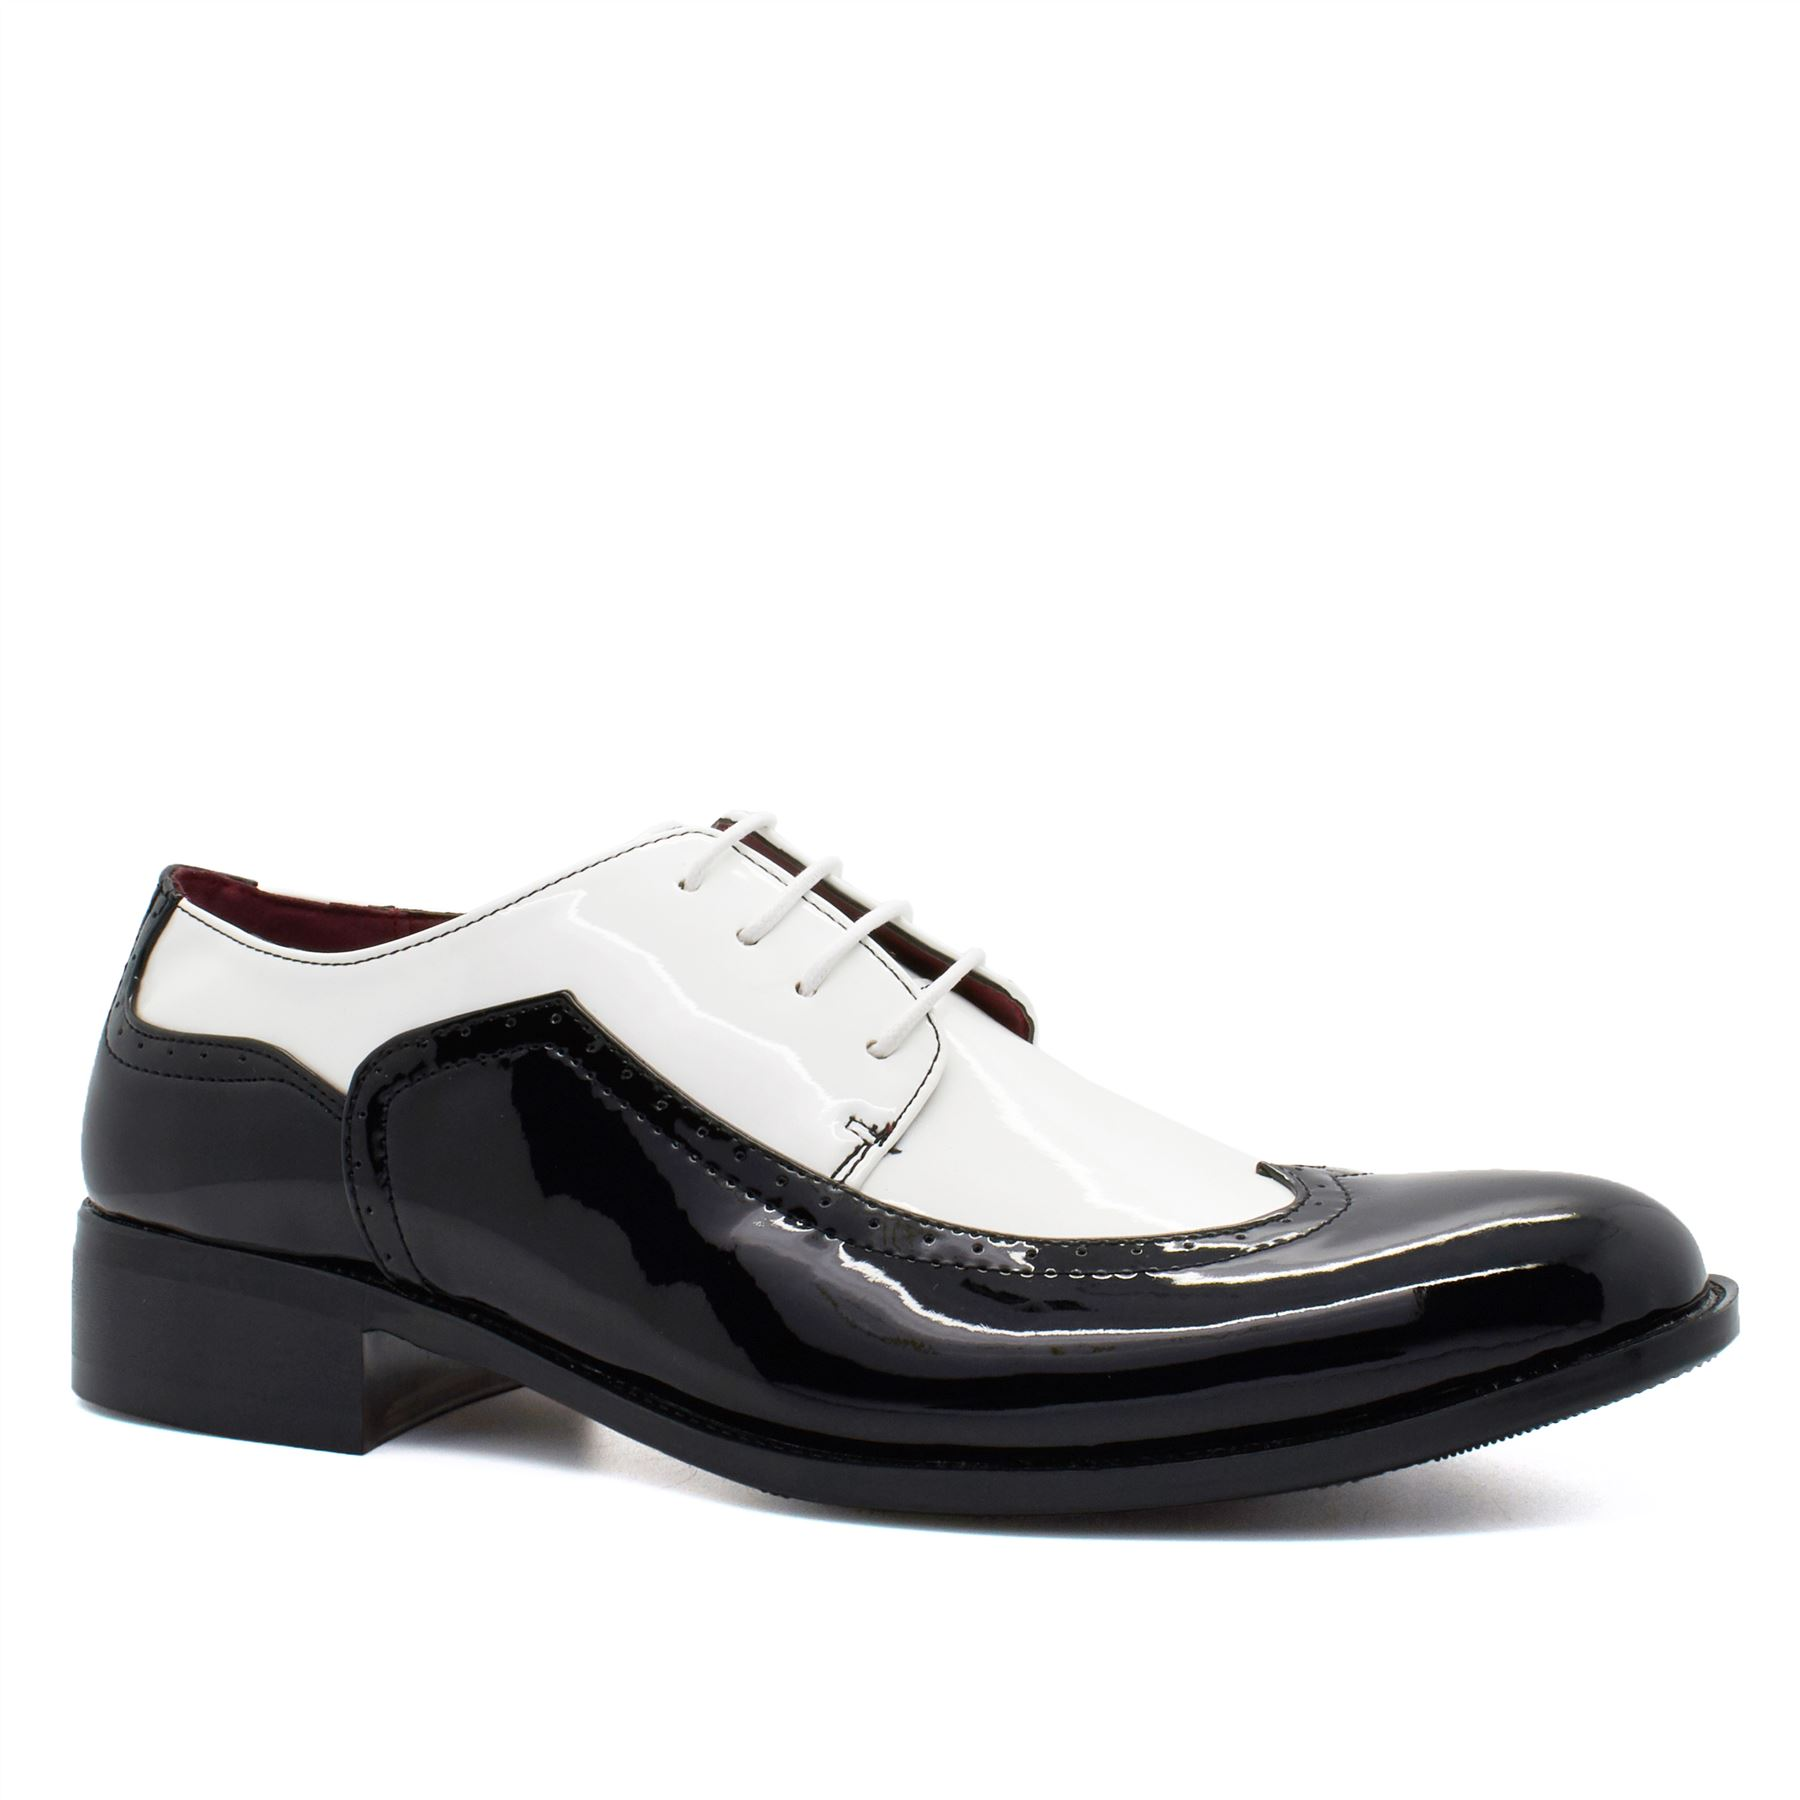 new mens black shiny patent leather formal shoes wedding